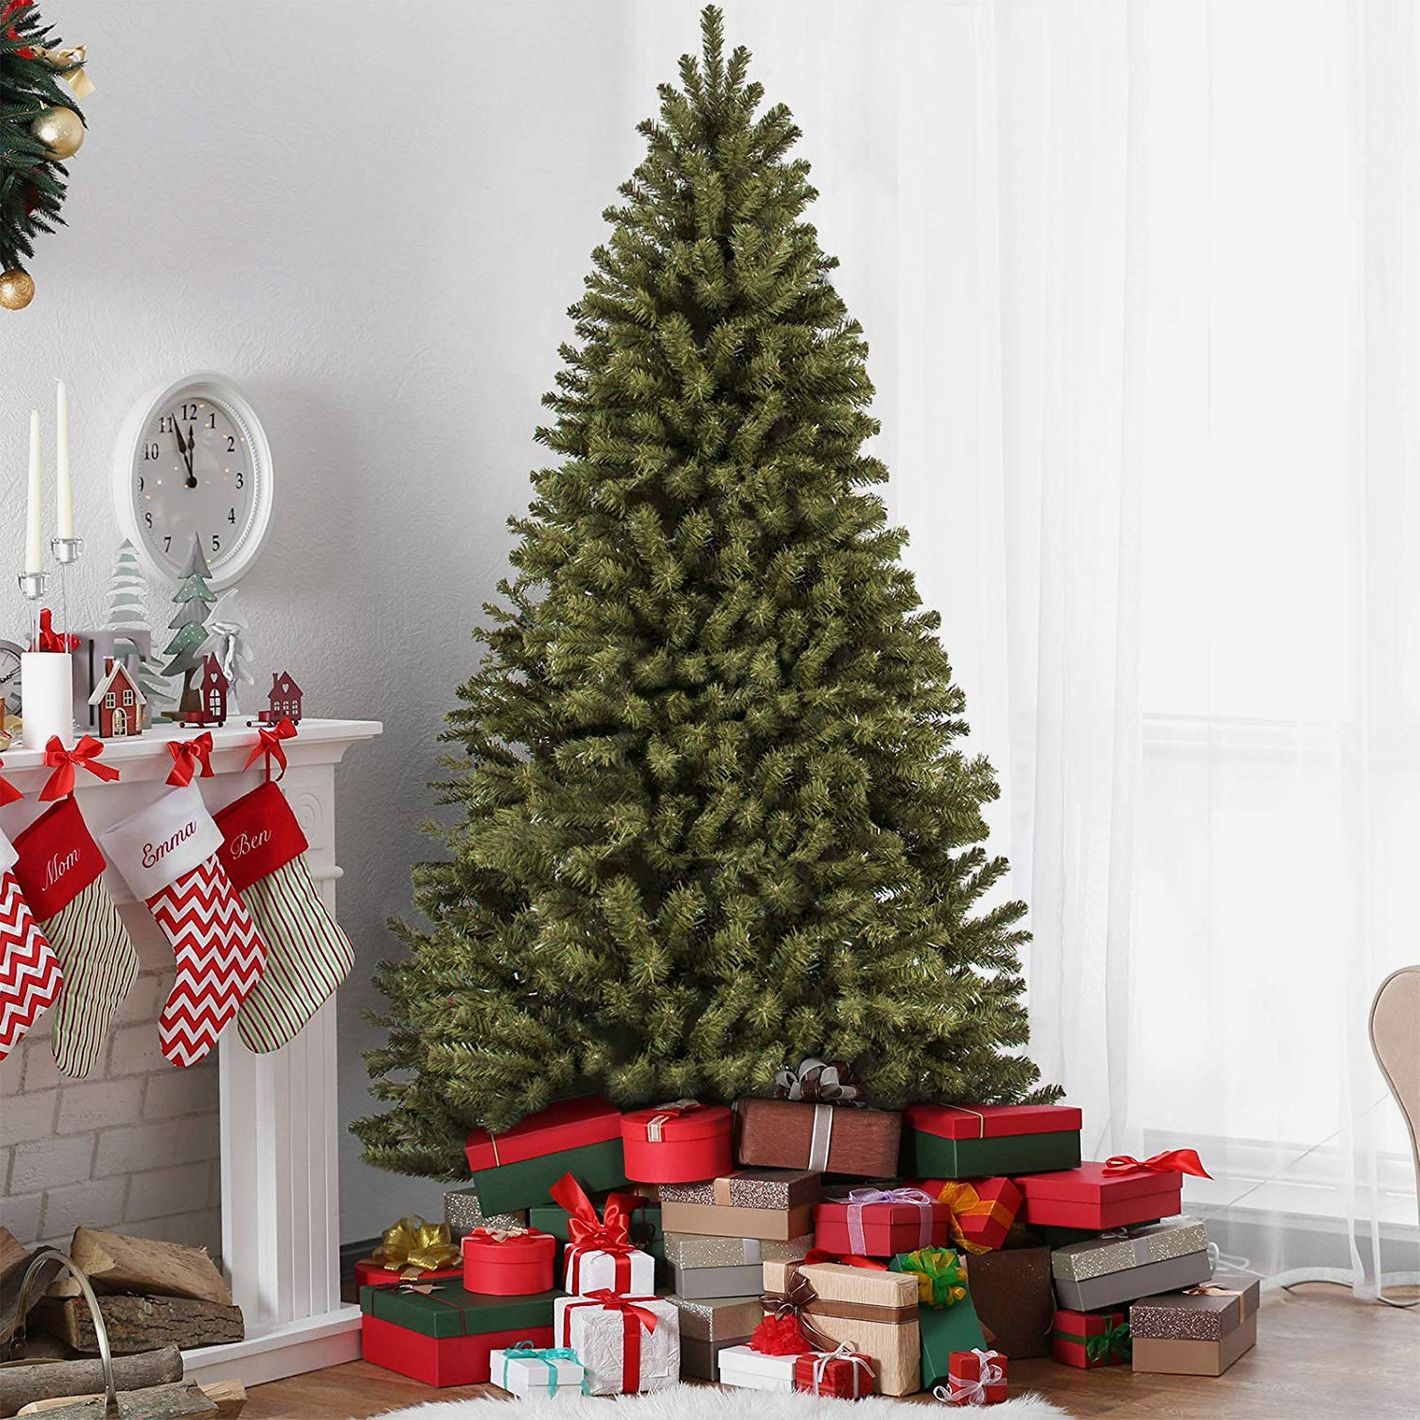 best choice products 75ft premium spruce hinged artificial christmas tree - Pictures Of Pretty Decorated Christmas Trees